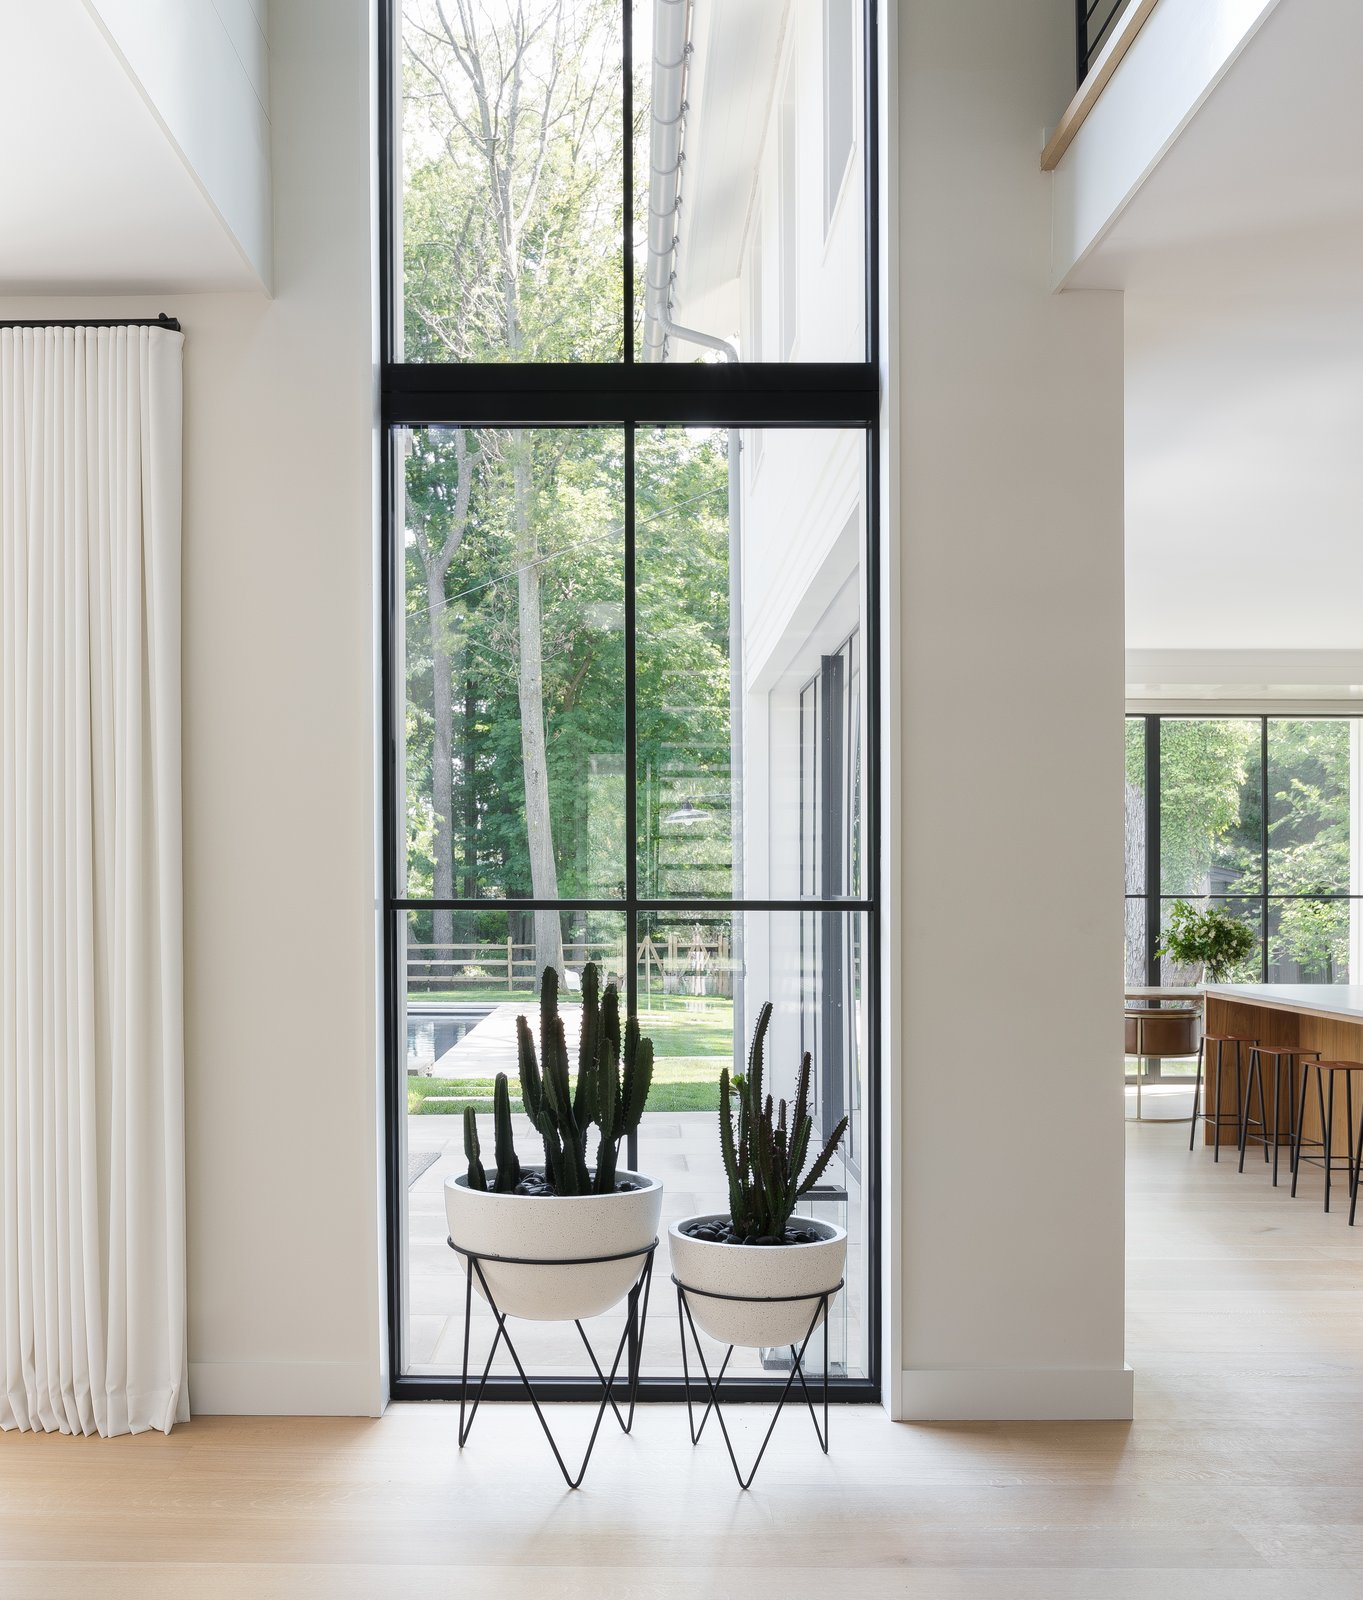 Windows, Picture Window Type, and Metal A two-story window floods the inside with light. The planters are from West Elm.  Photo 4 of 16 in A New Jersey Neighborhood Gets a Gorgeous Passive House